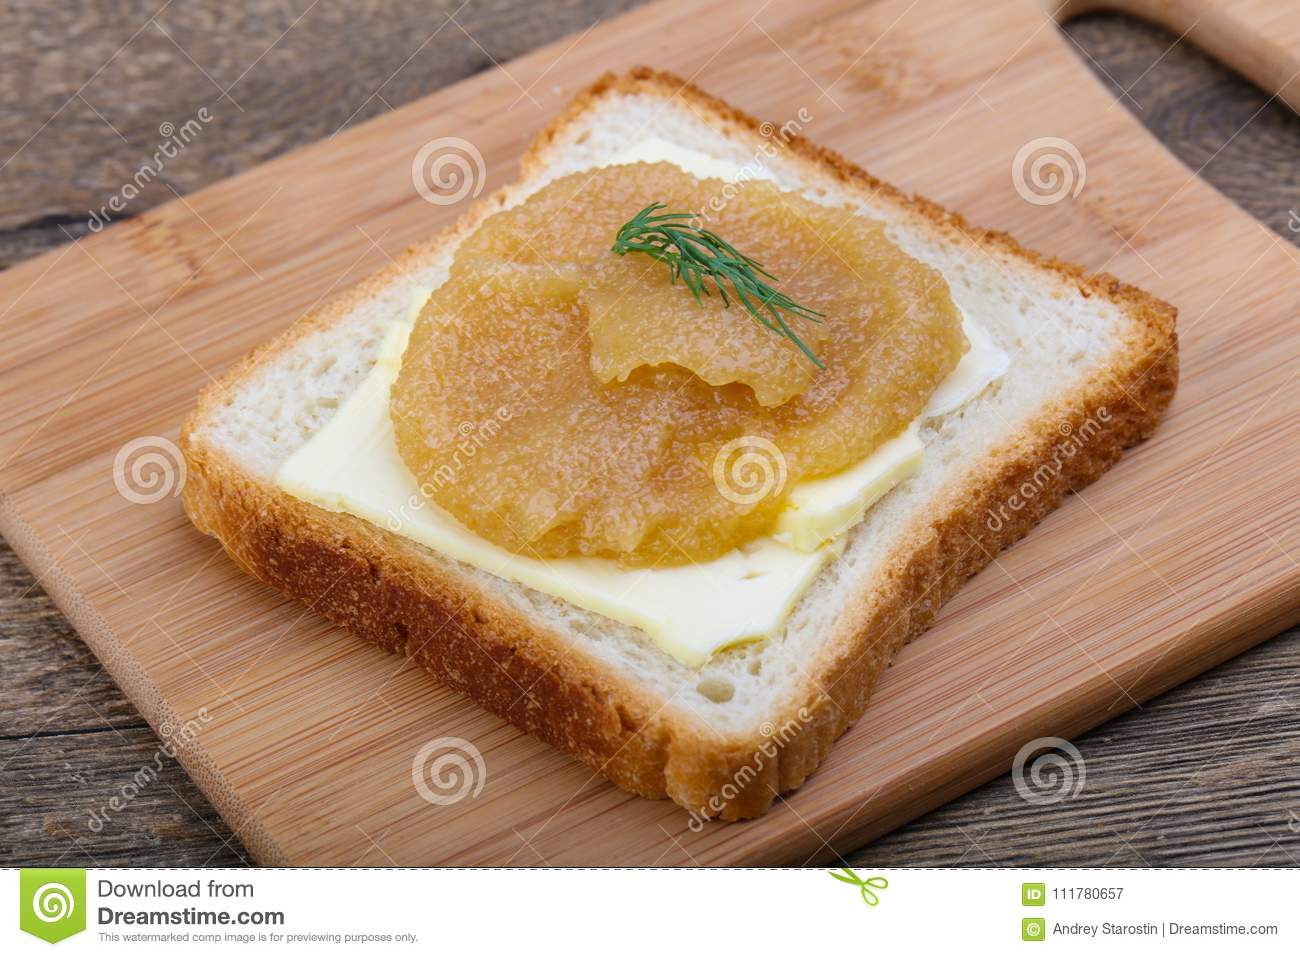 Sandwich with herring roe